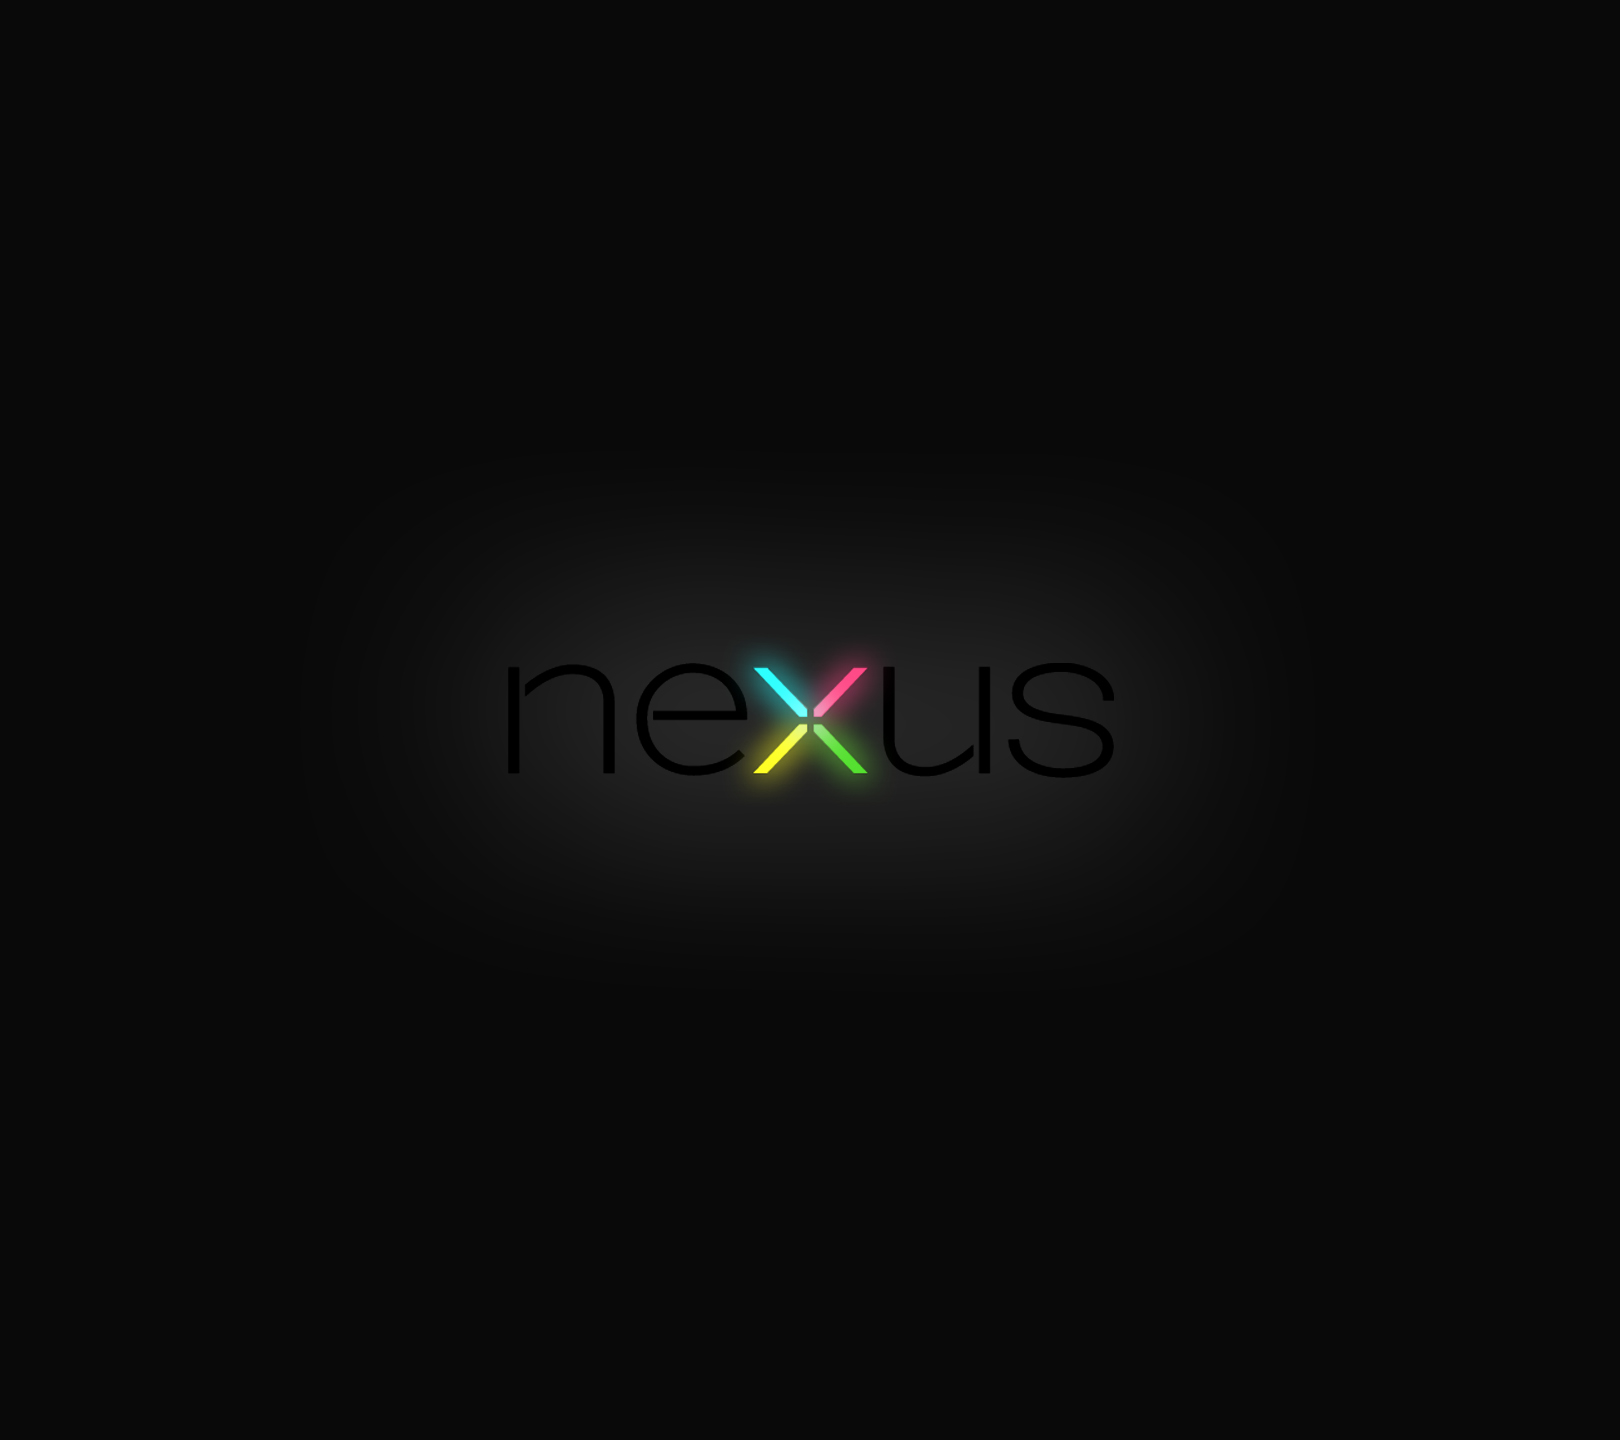 desktop nexus backgrounds wallpaper desktop nexus backgrounds hd